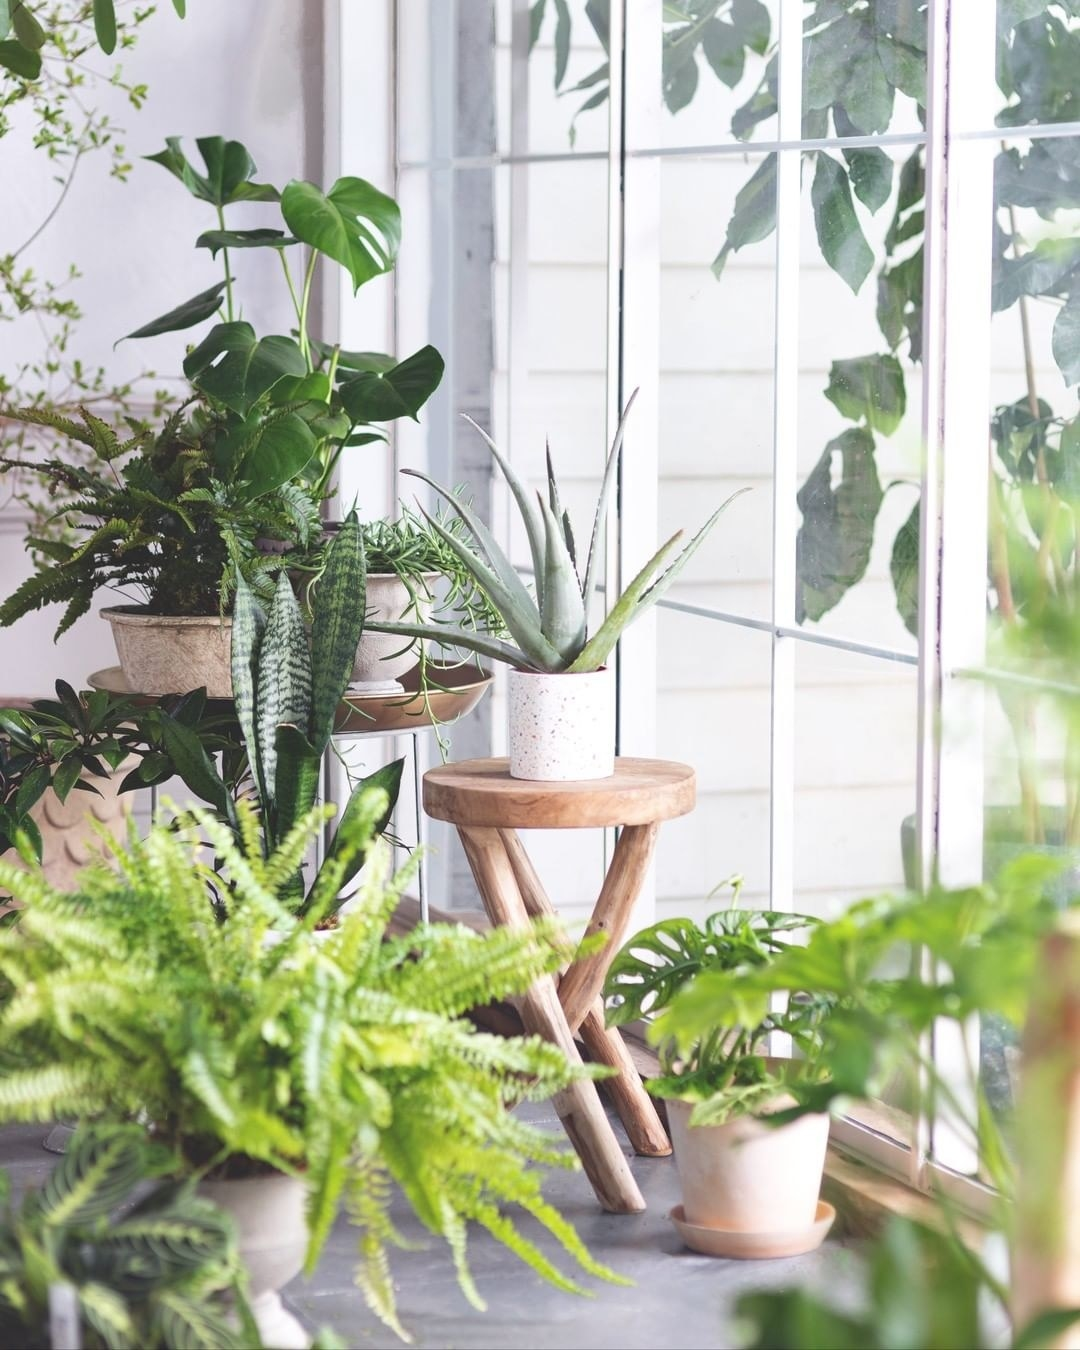 Many houseplants are potted and arranged on various tables and the floor in the corner of a room next to a window